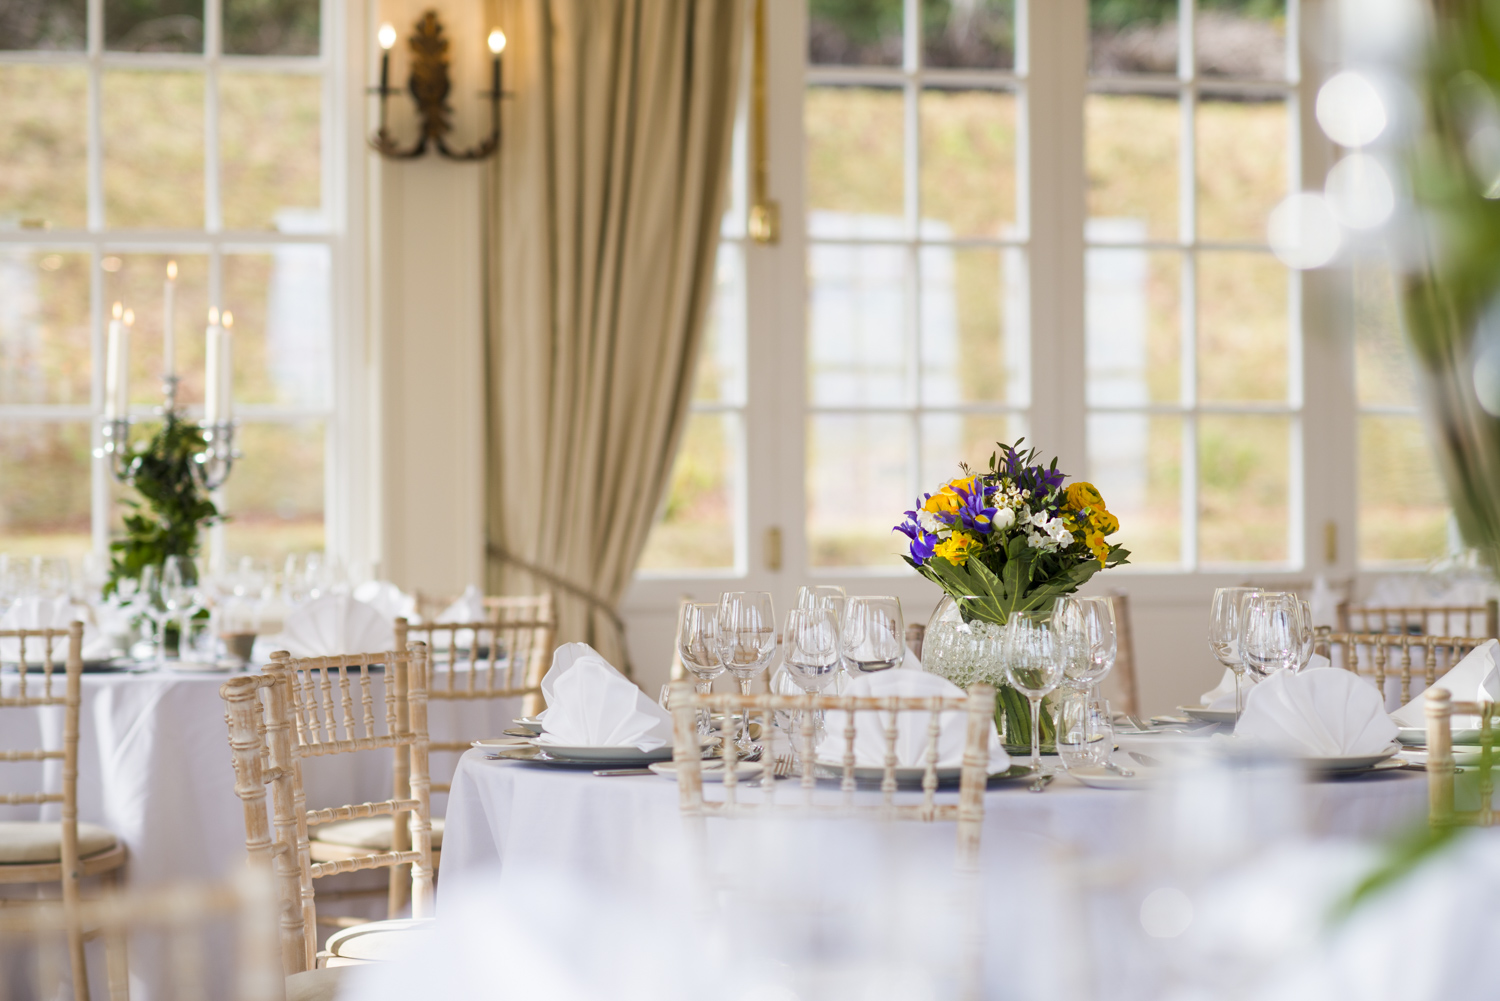 The Orangery set for a wedding